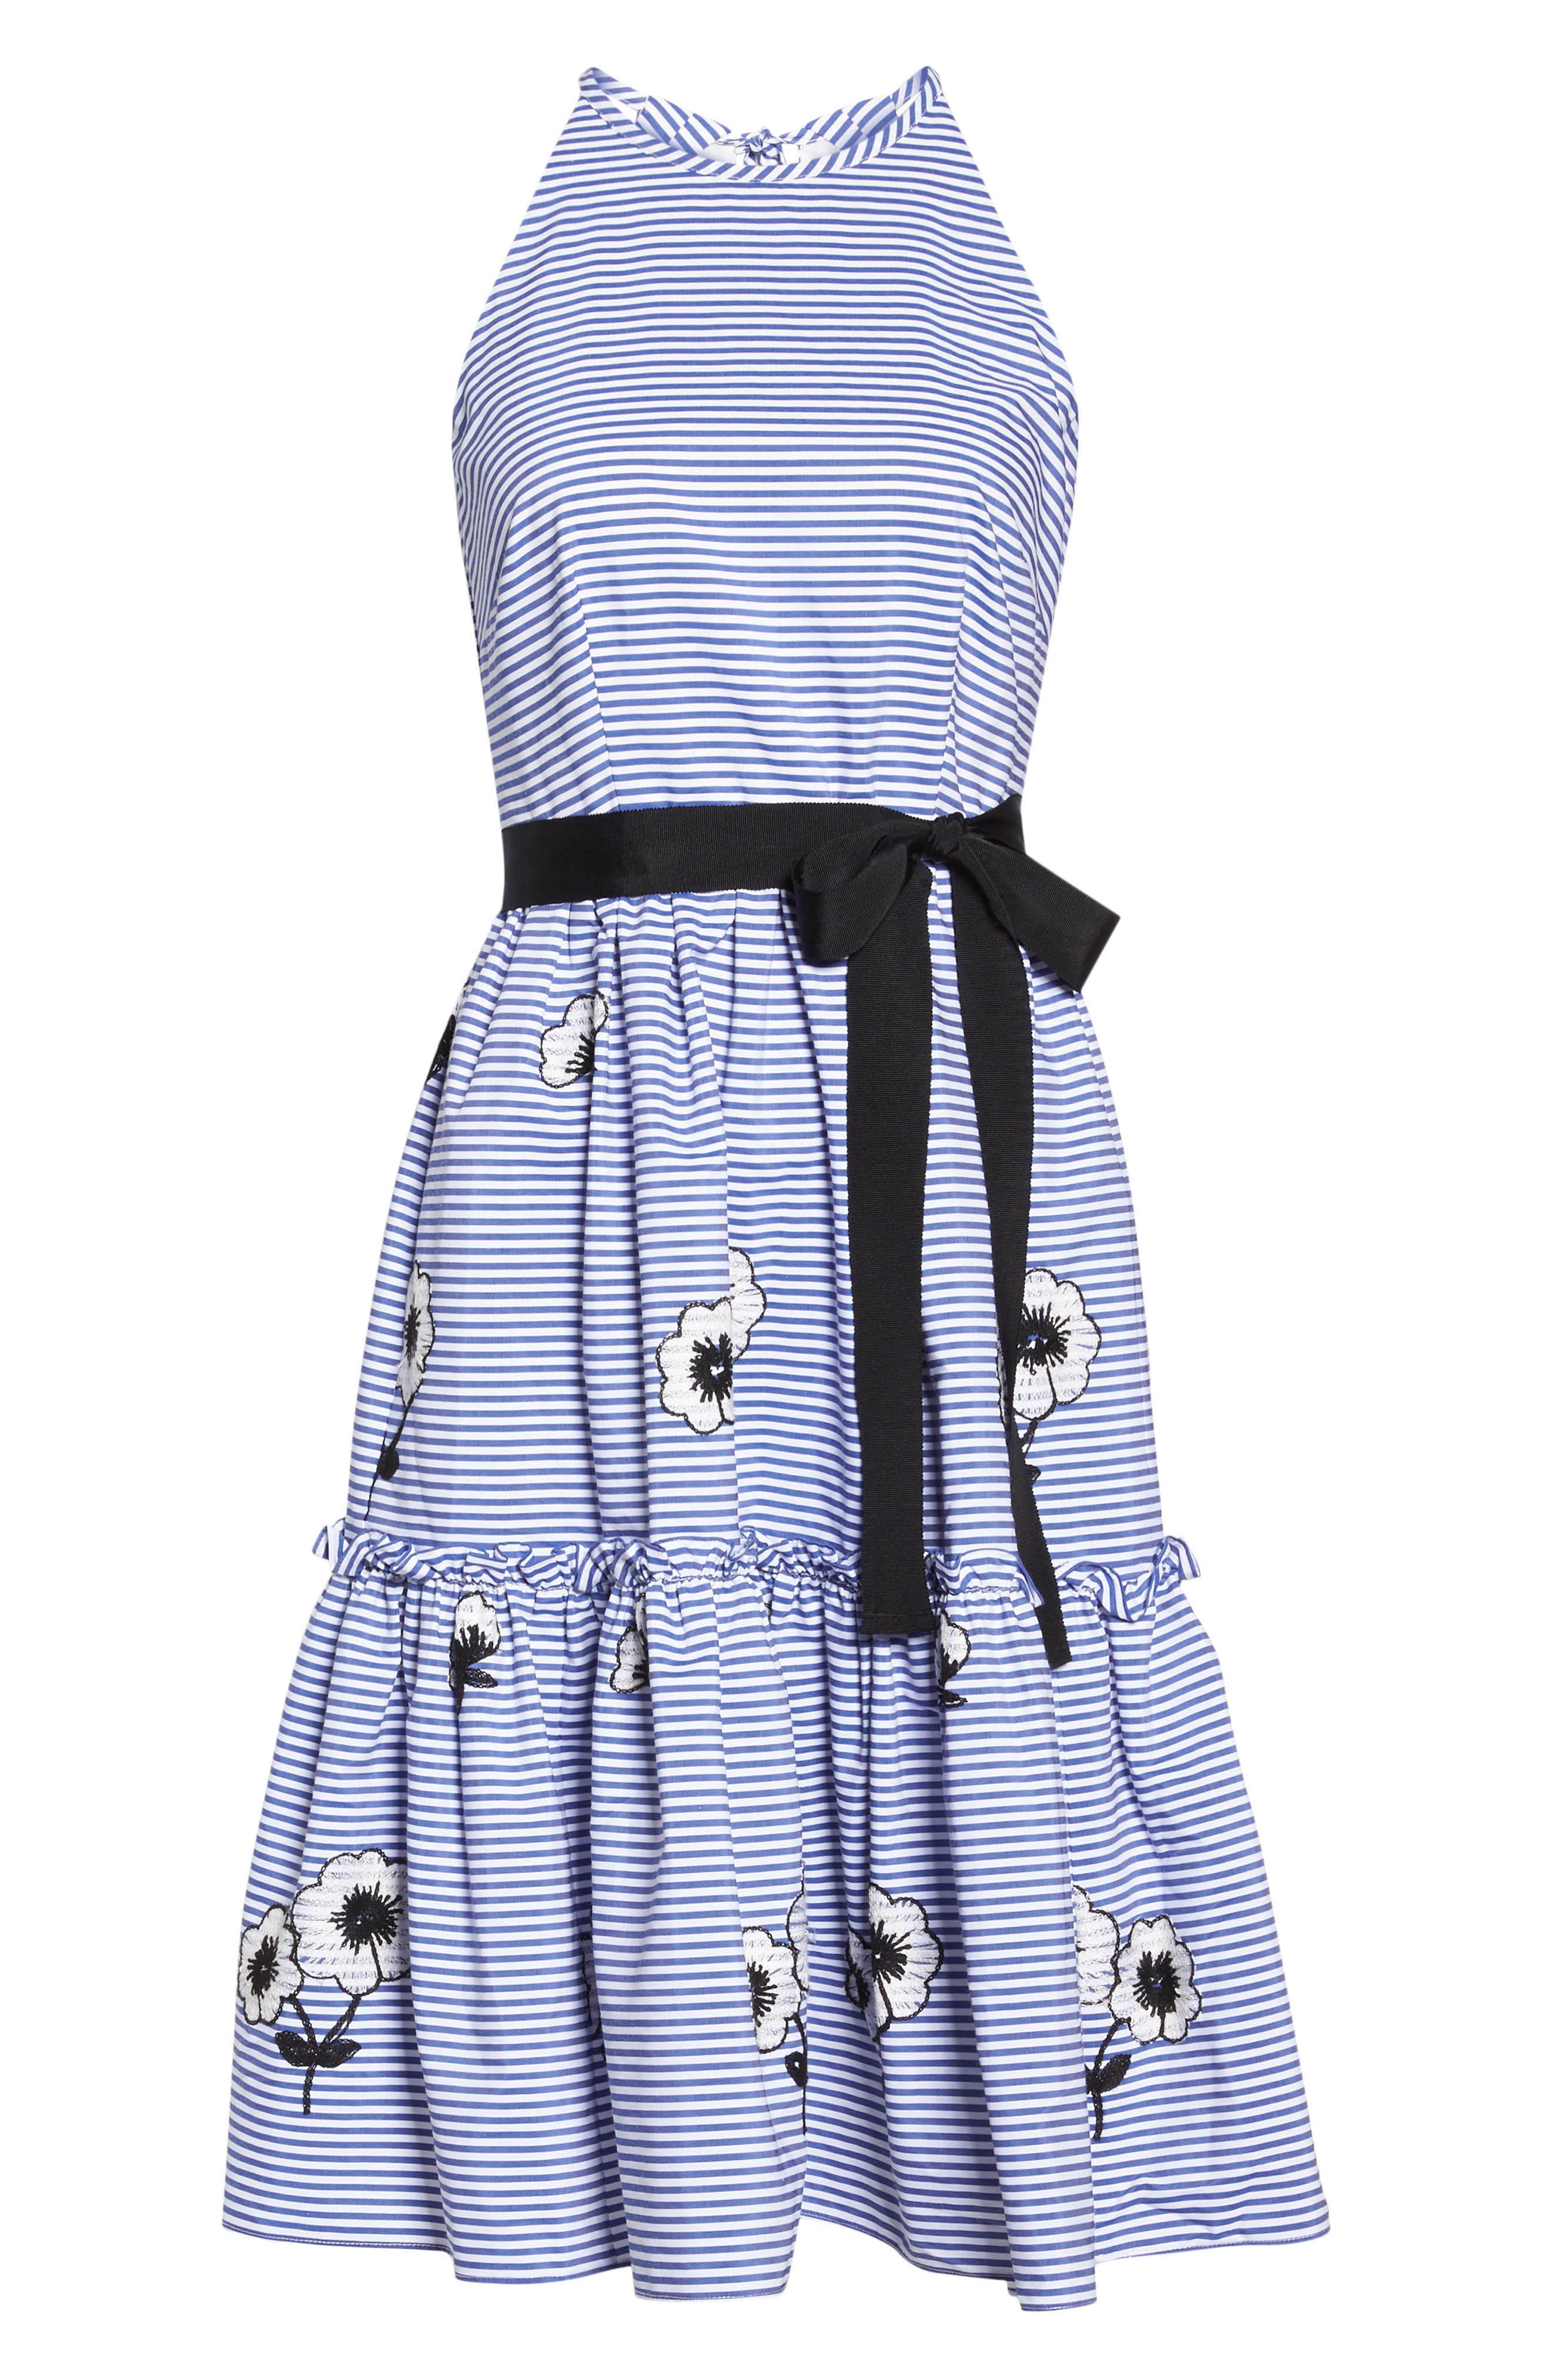 Embroidered Stripe Fit & Flare Dress,                             Alternate thumbnail 6, color,                             421